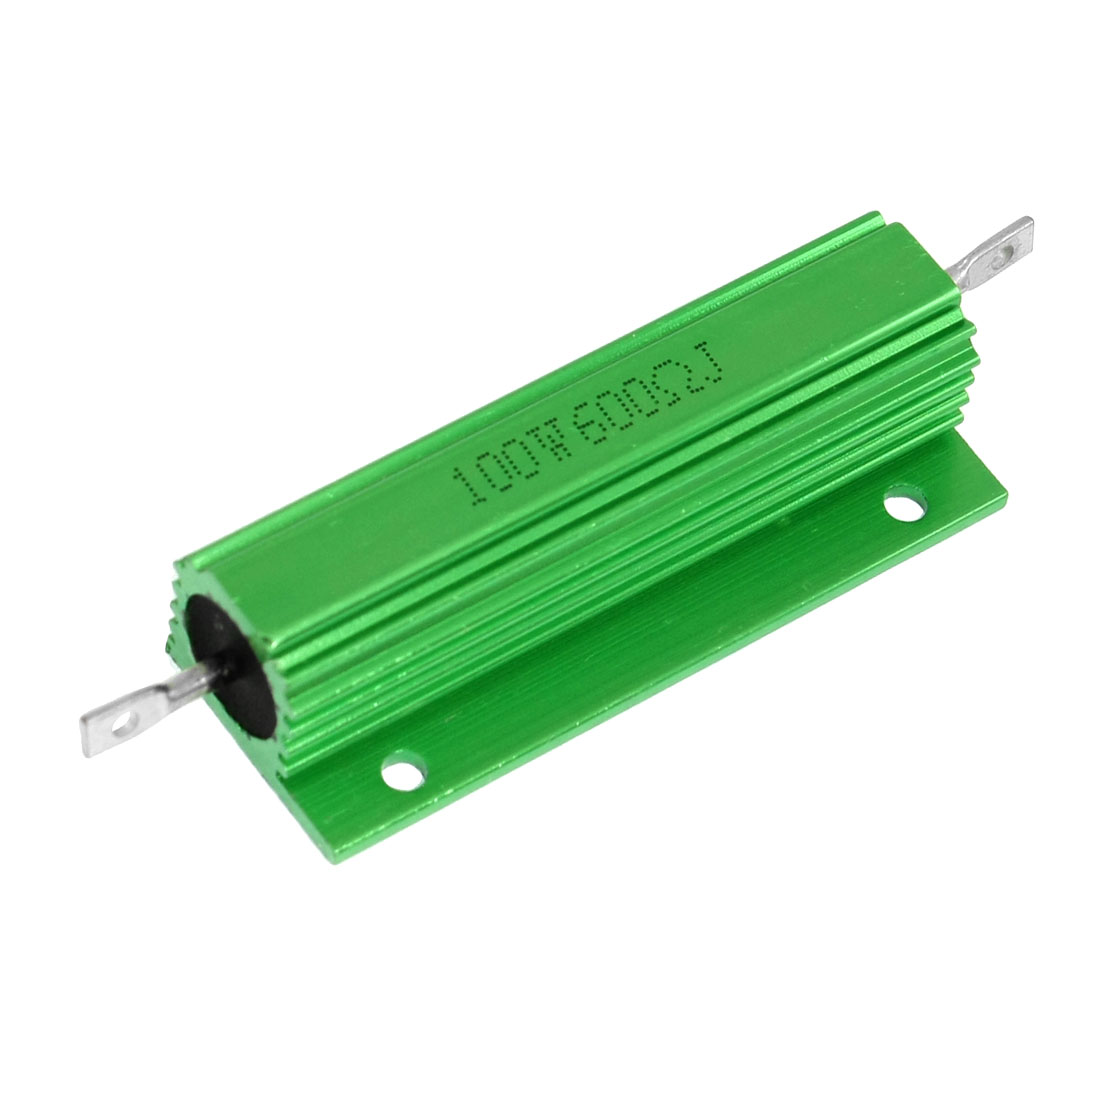 100W 600 Ohm Green Aluminum Case Wire Wound Housed Resistor